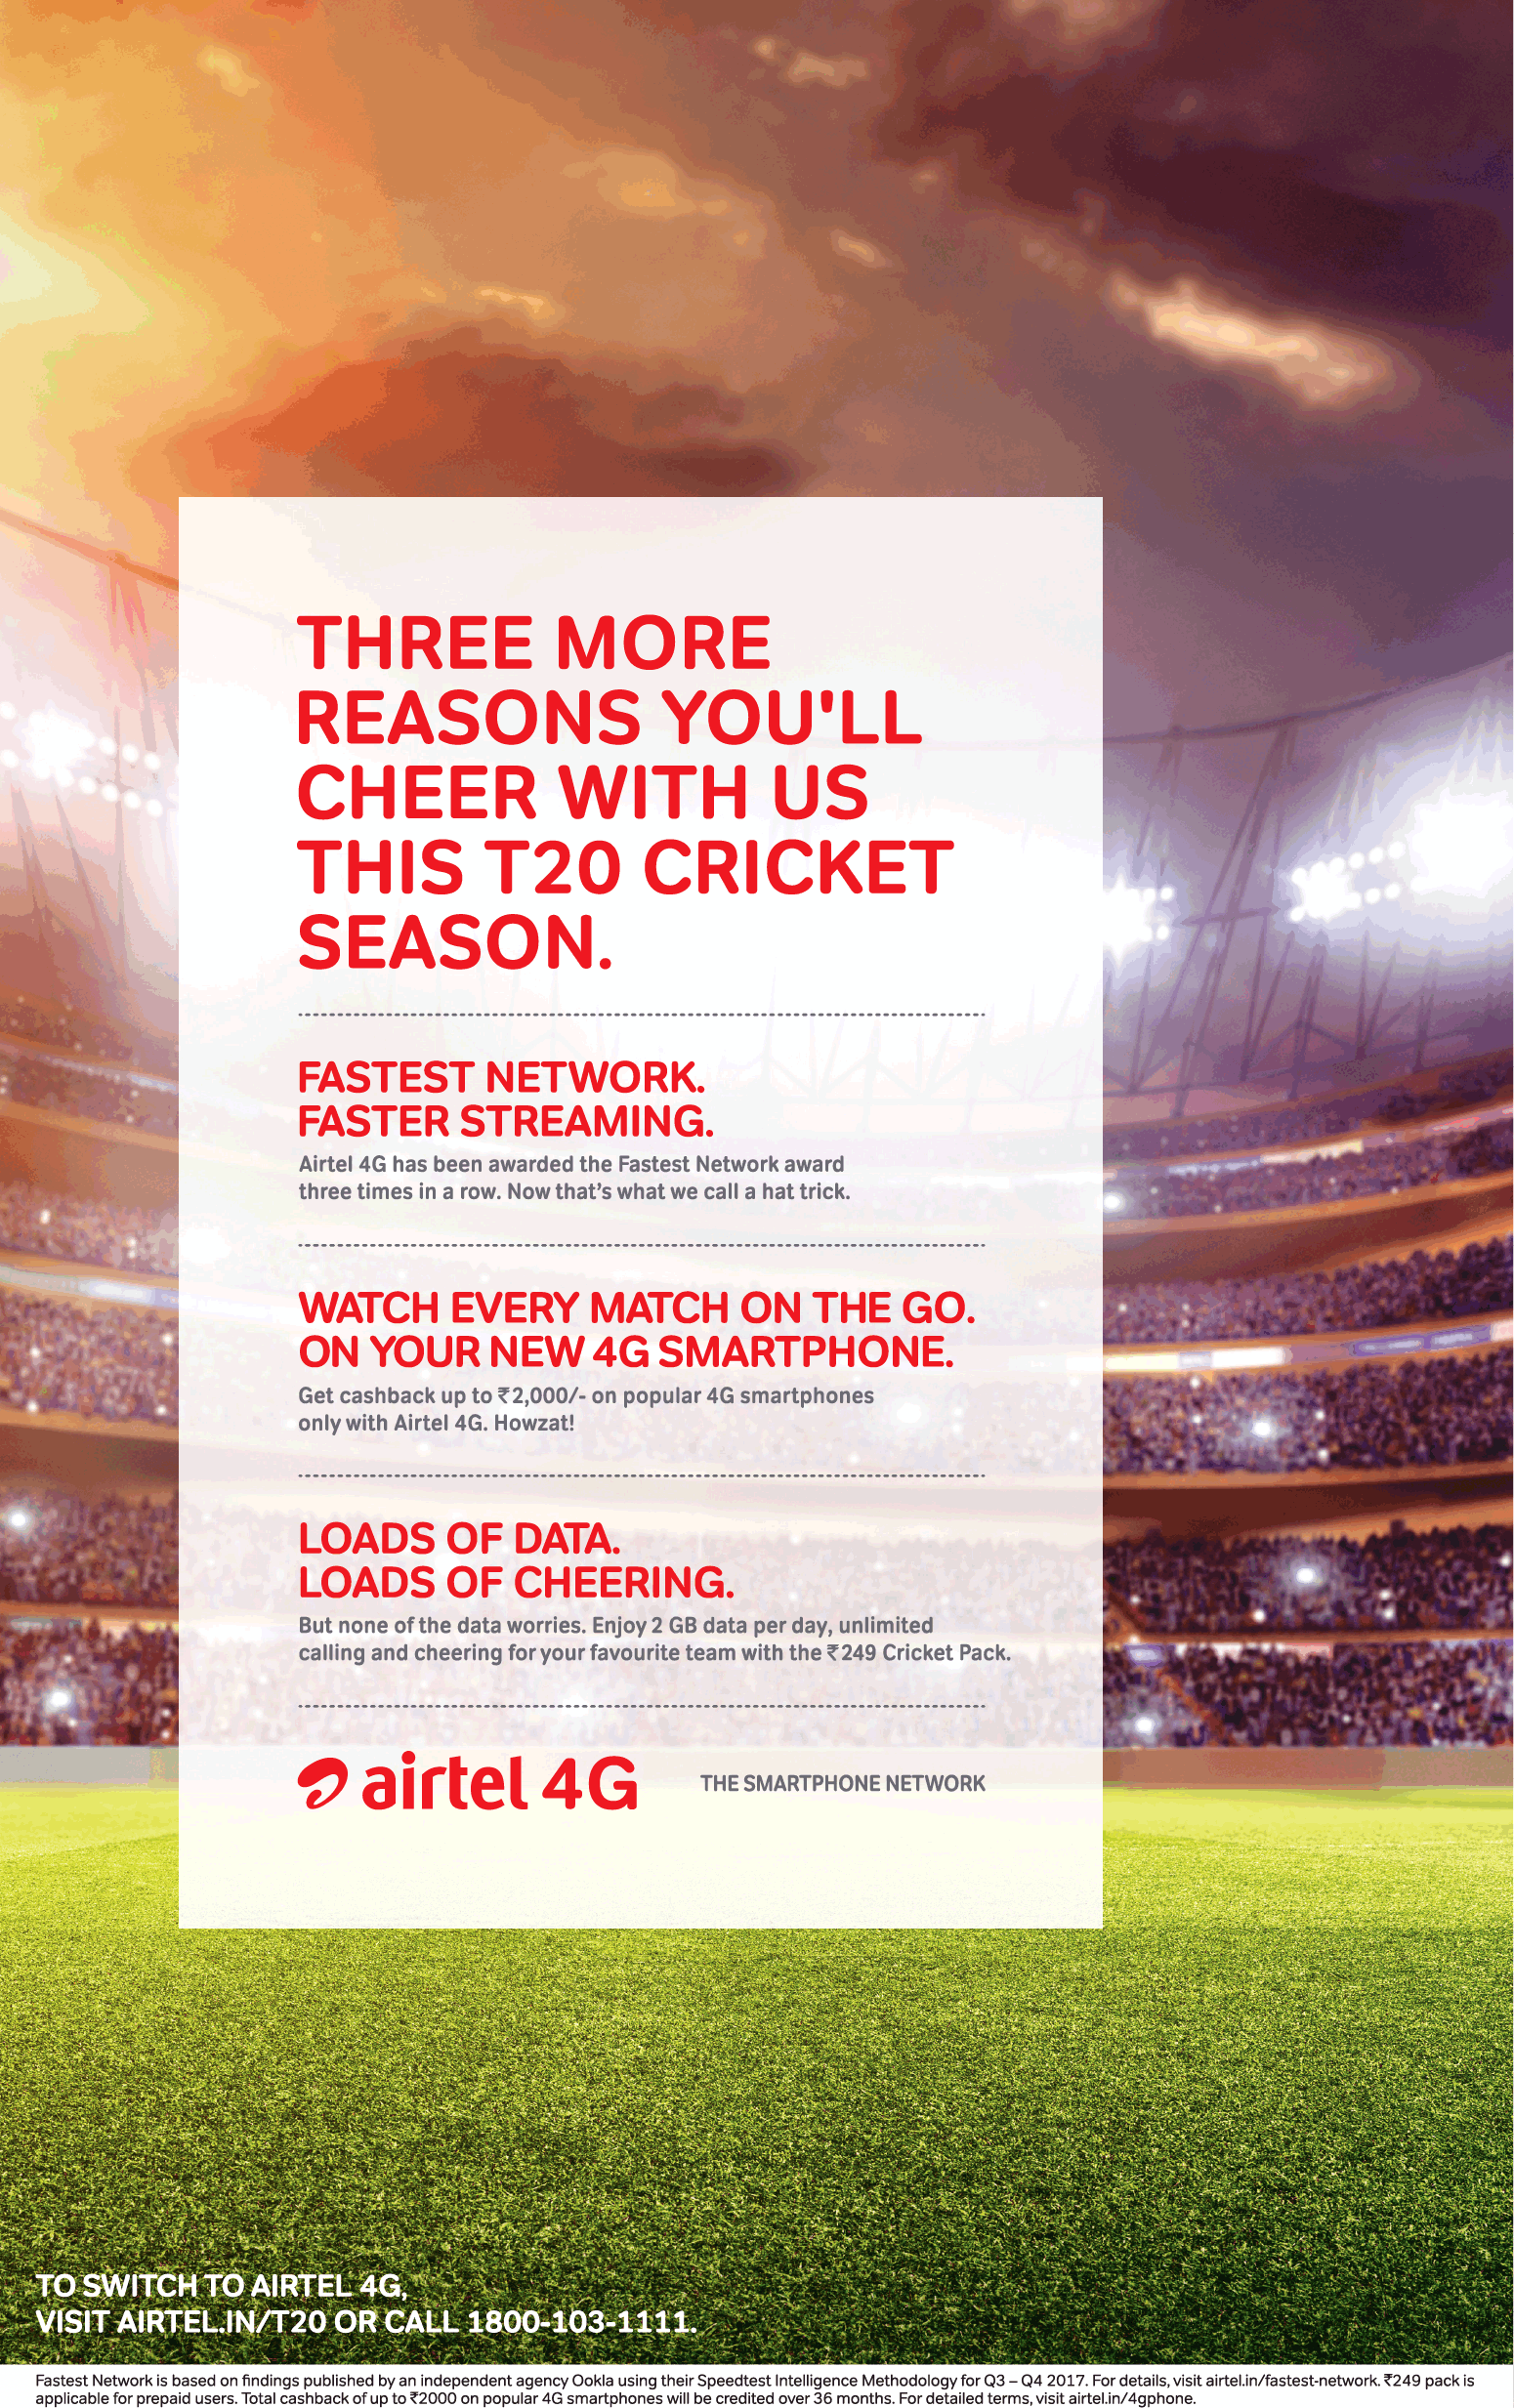 Airtel 4G Three More Reasons You Wull Cheer With Us This T20 Cricket Season Ad